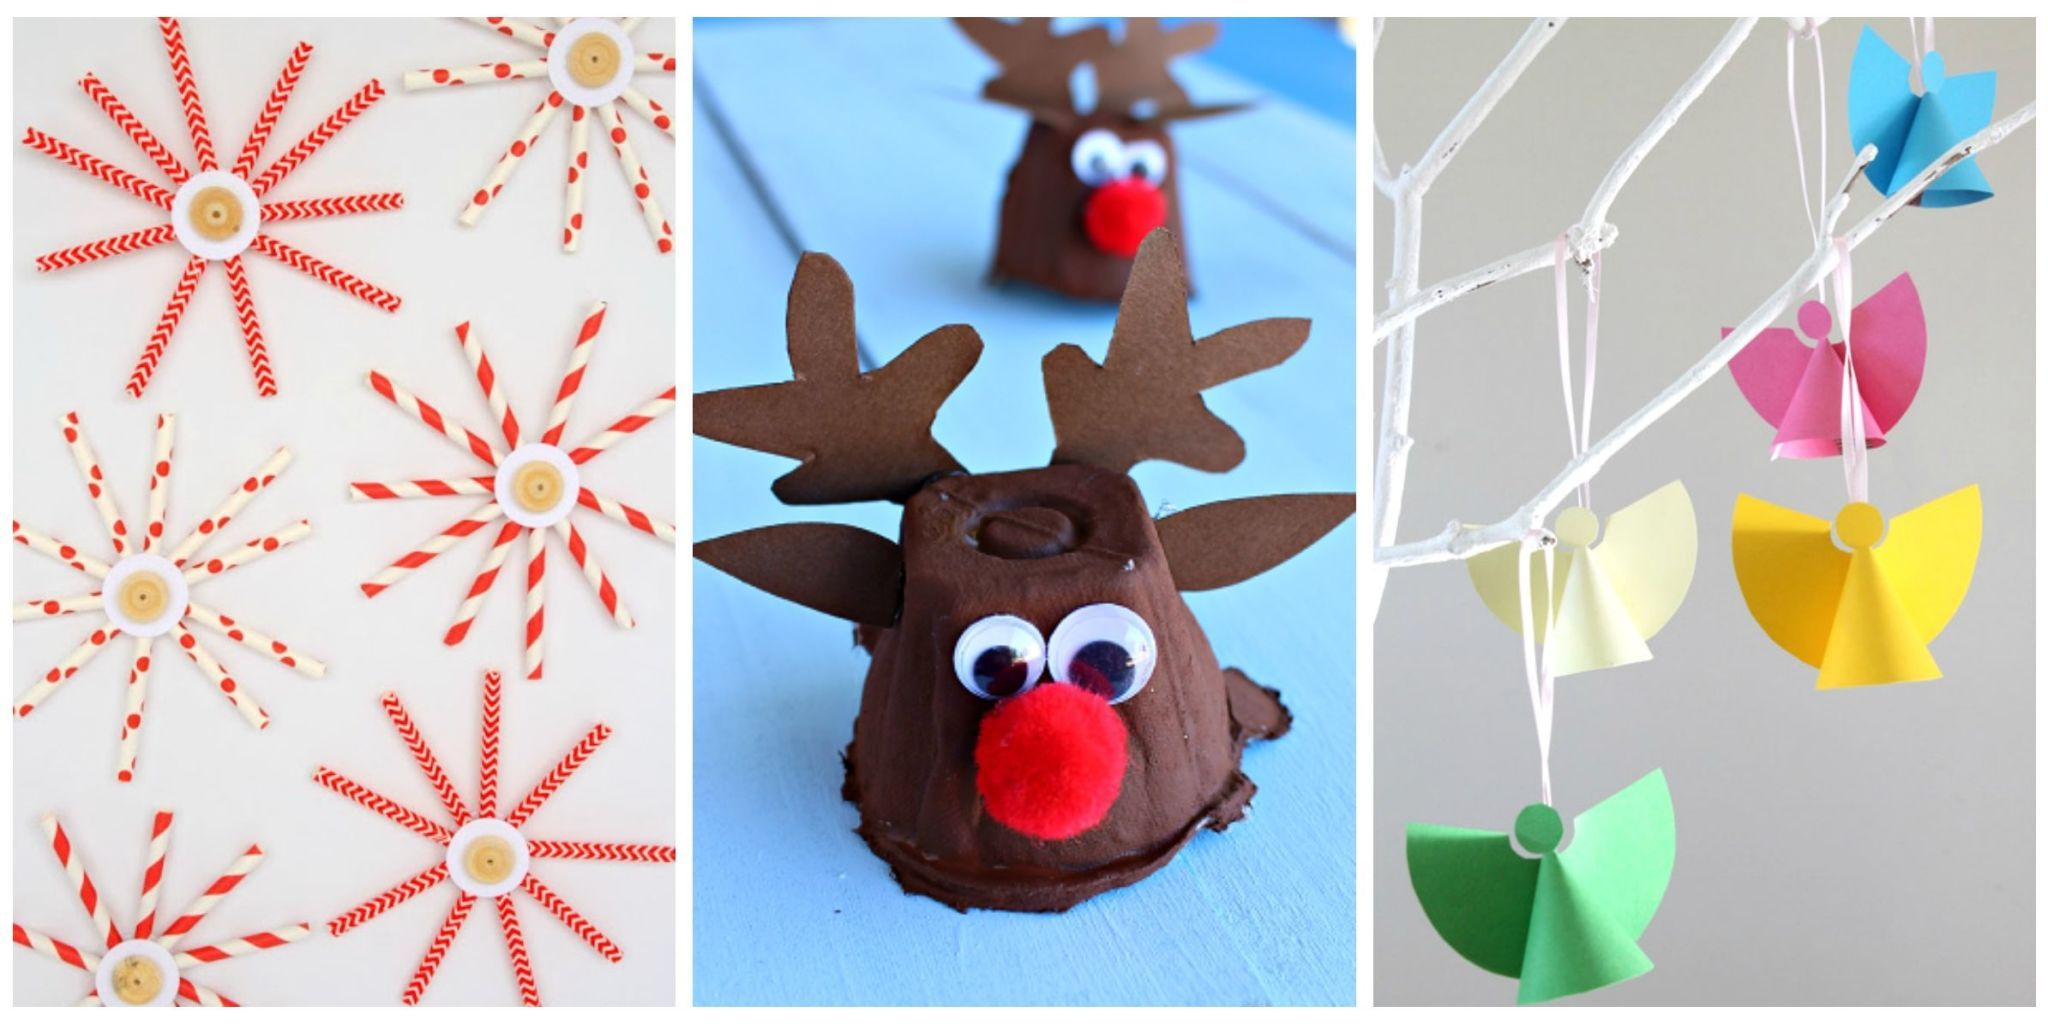 26 Christmas Activities for Kids - DIY Holiday Crafts and ...